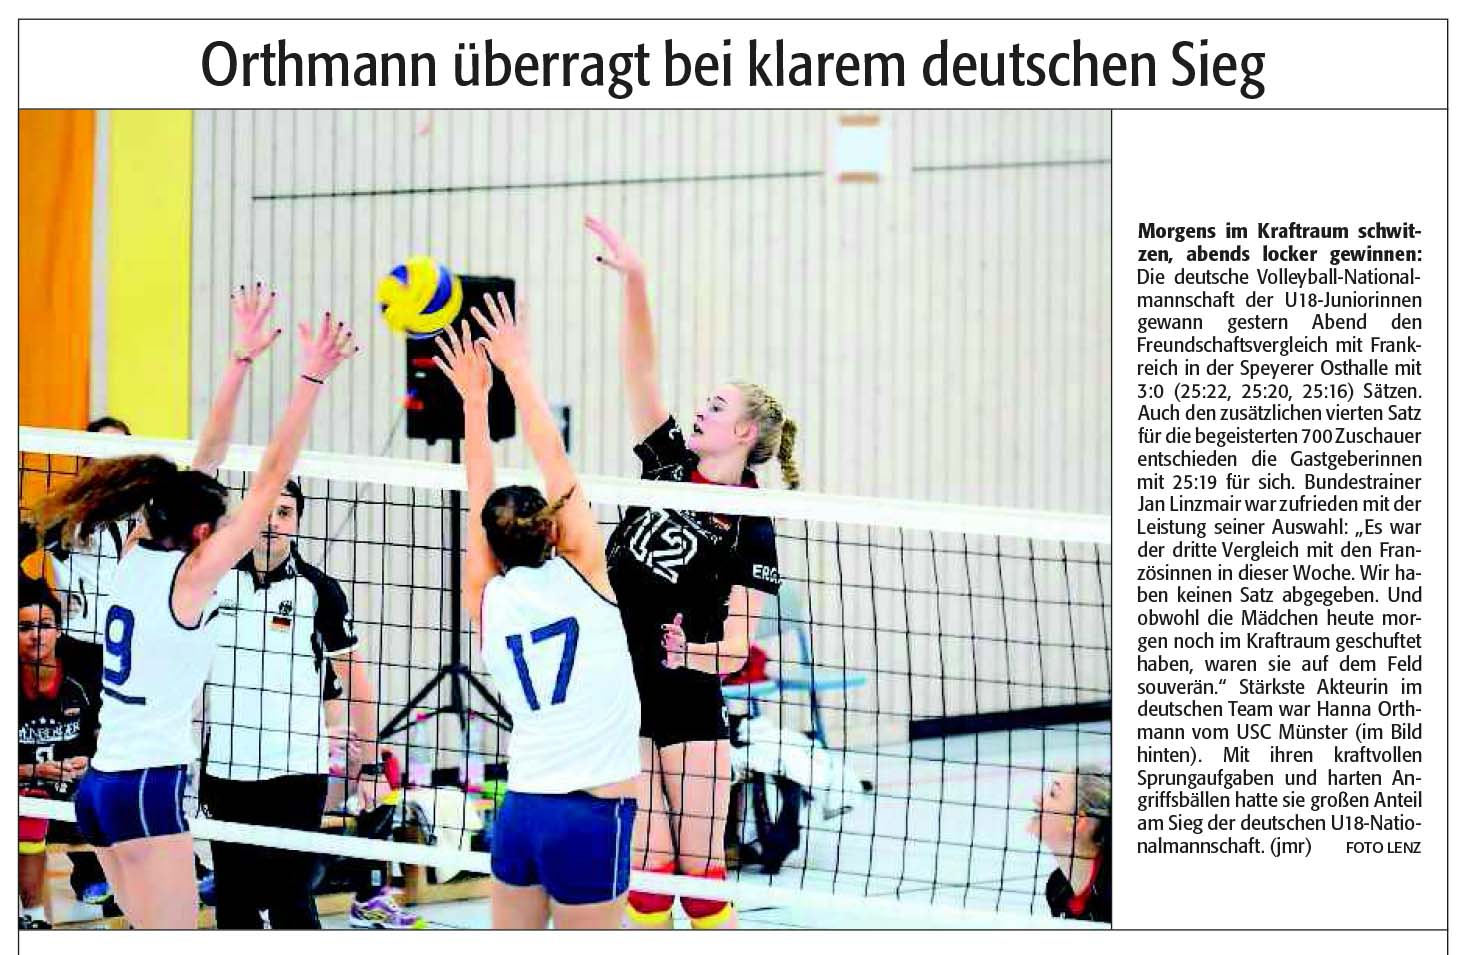 U18-Juniorinnen Nationalmannschaft in Speyer